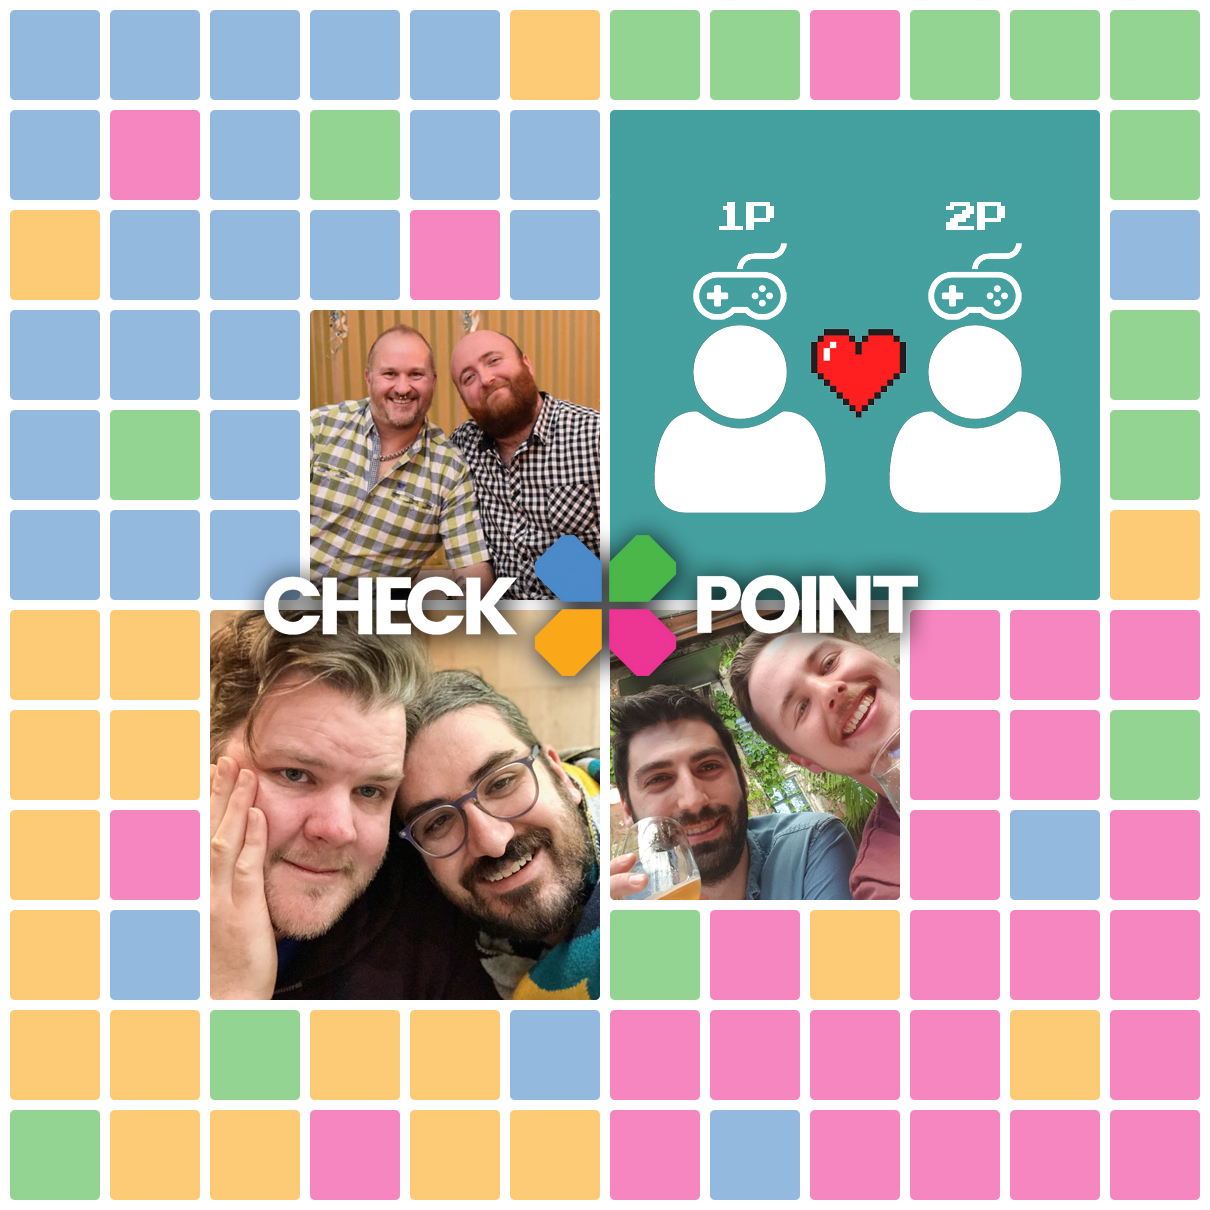 Checkpoint Couples and Gaming